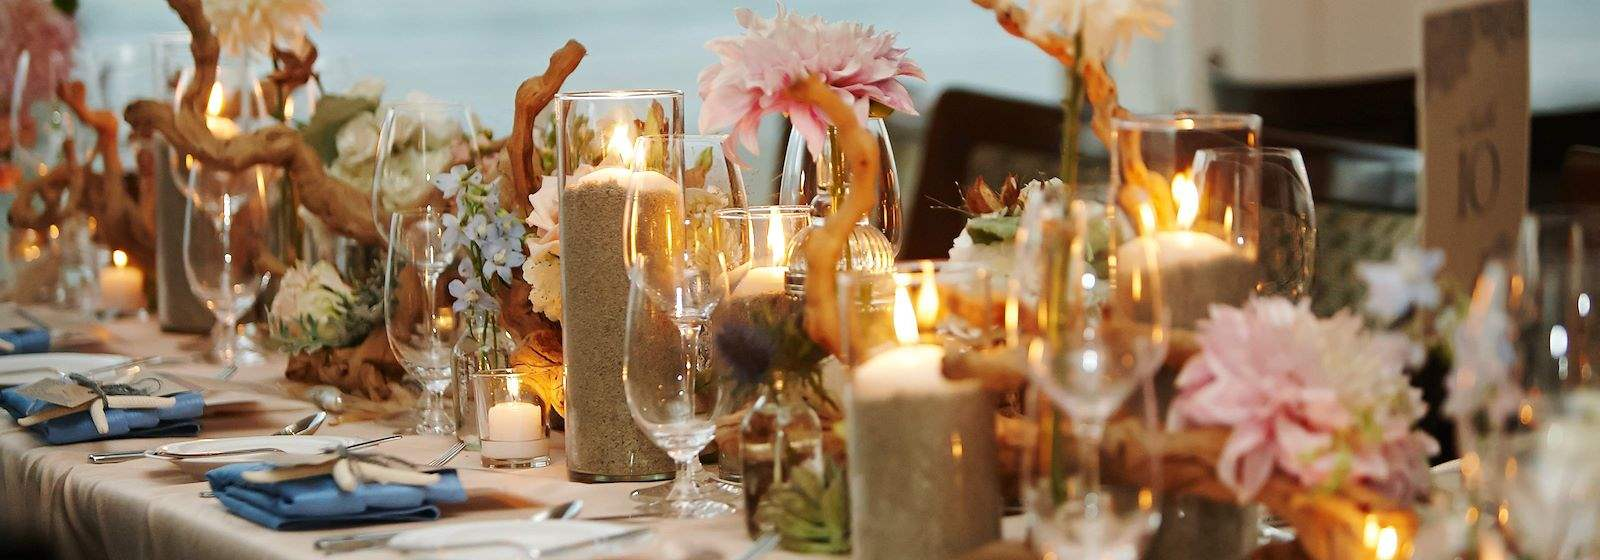 Celebrate your Special Occasions at The Marine Room, La Jolla